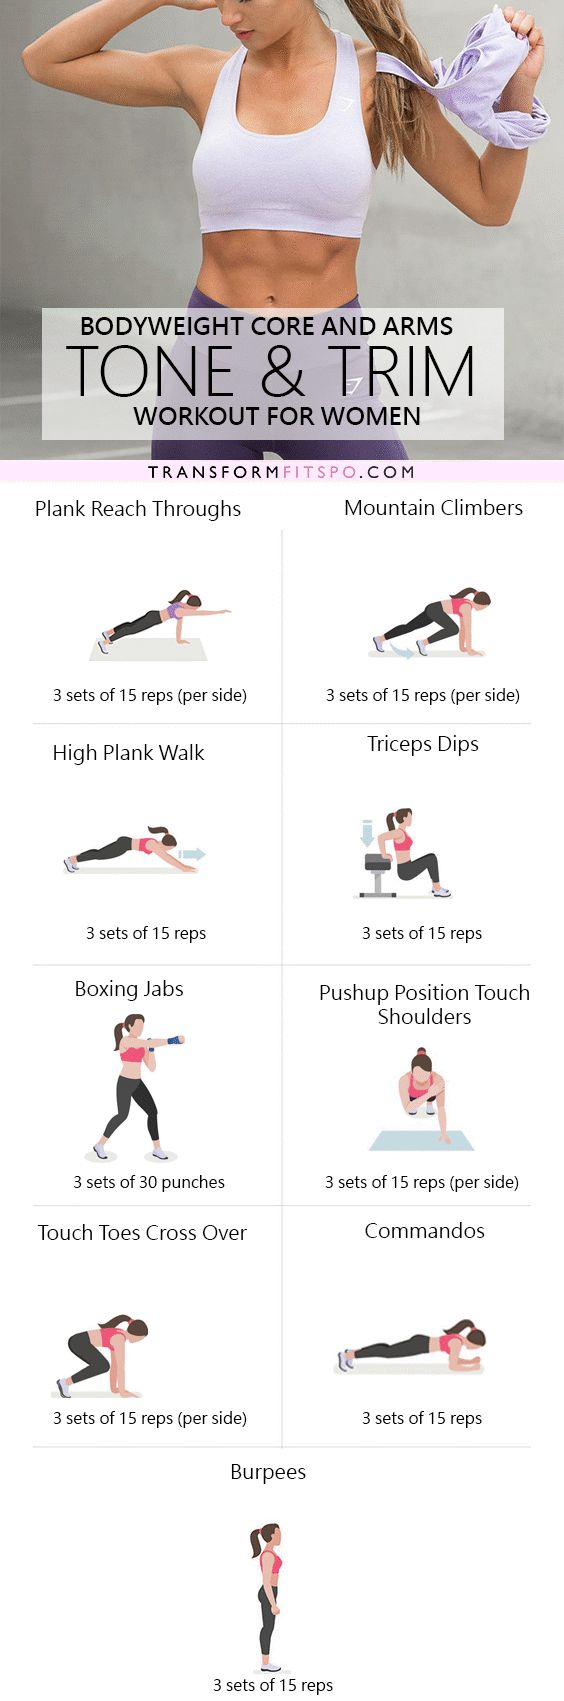 Repin and share if this home workout got you in sexy shape! Read the post for all the info!